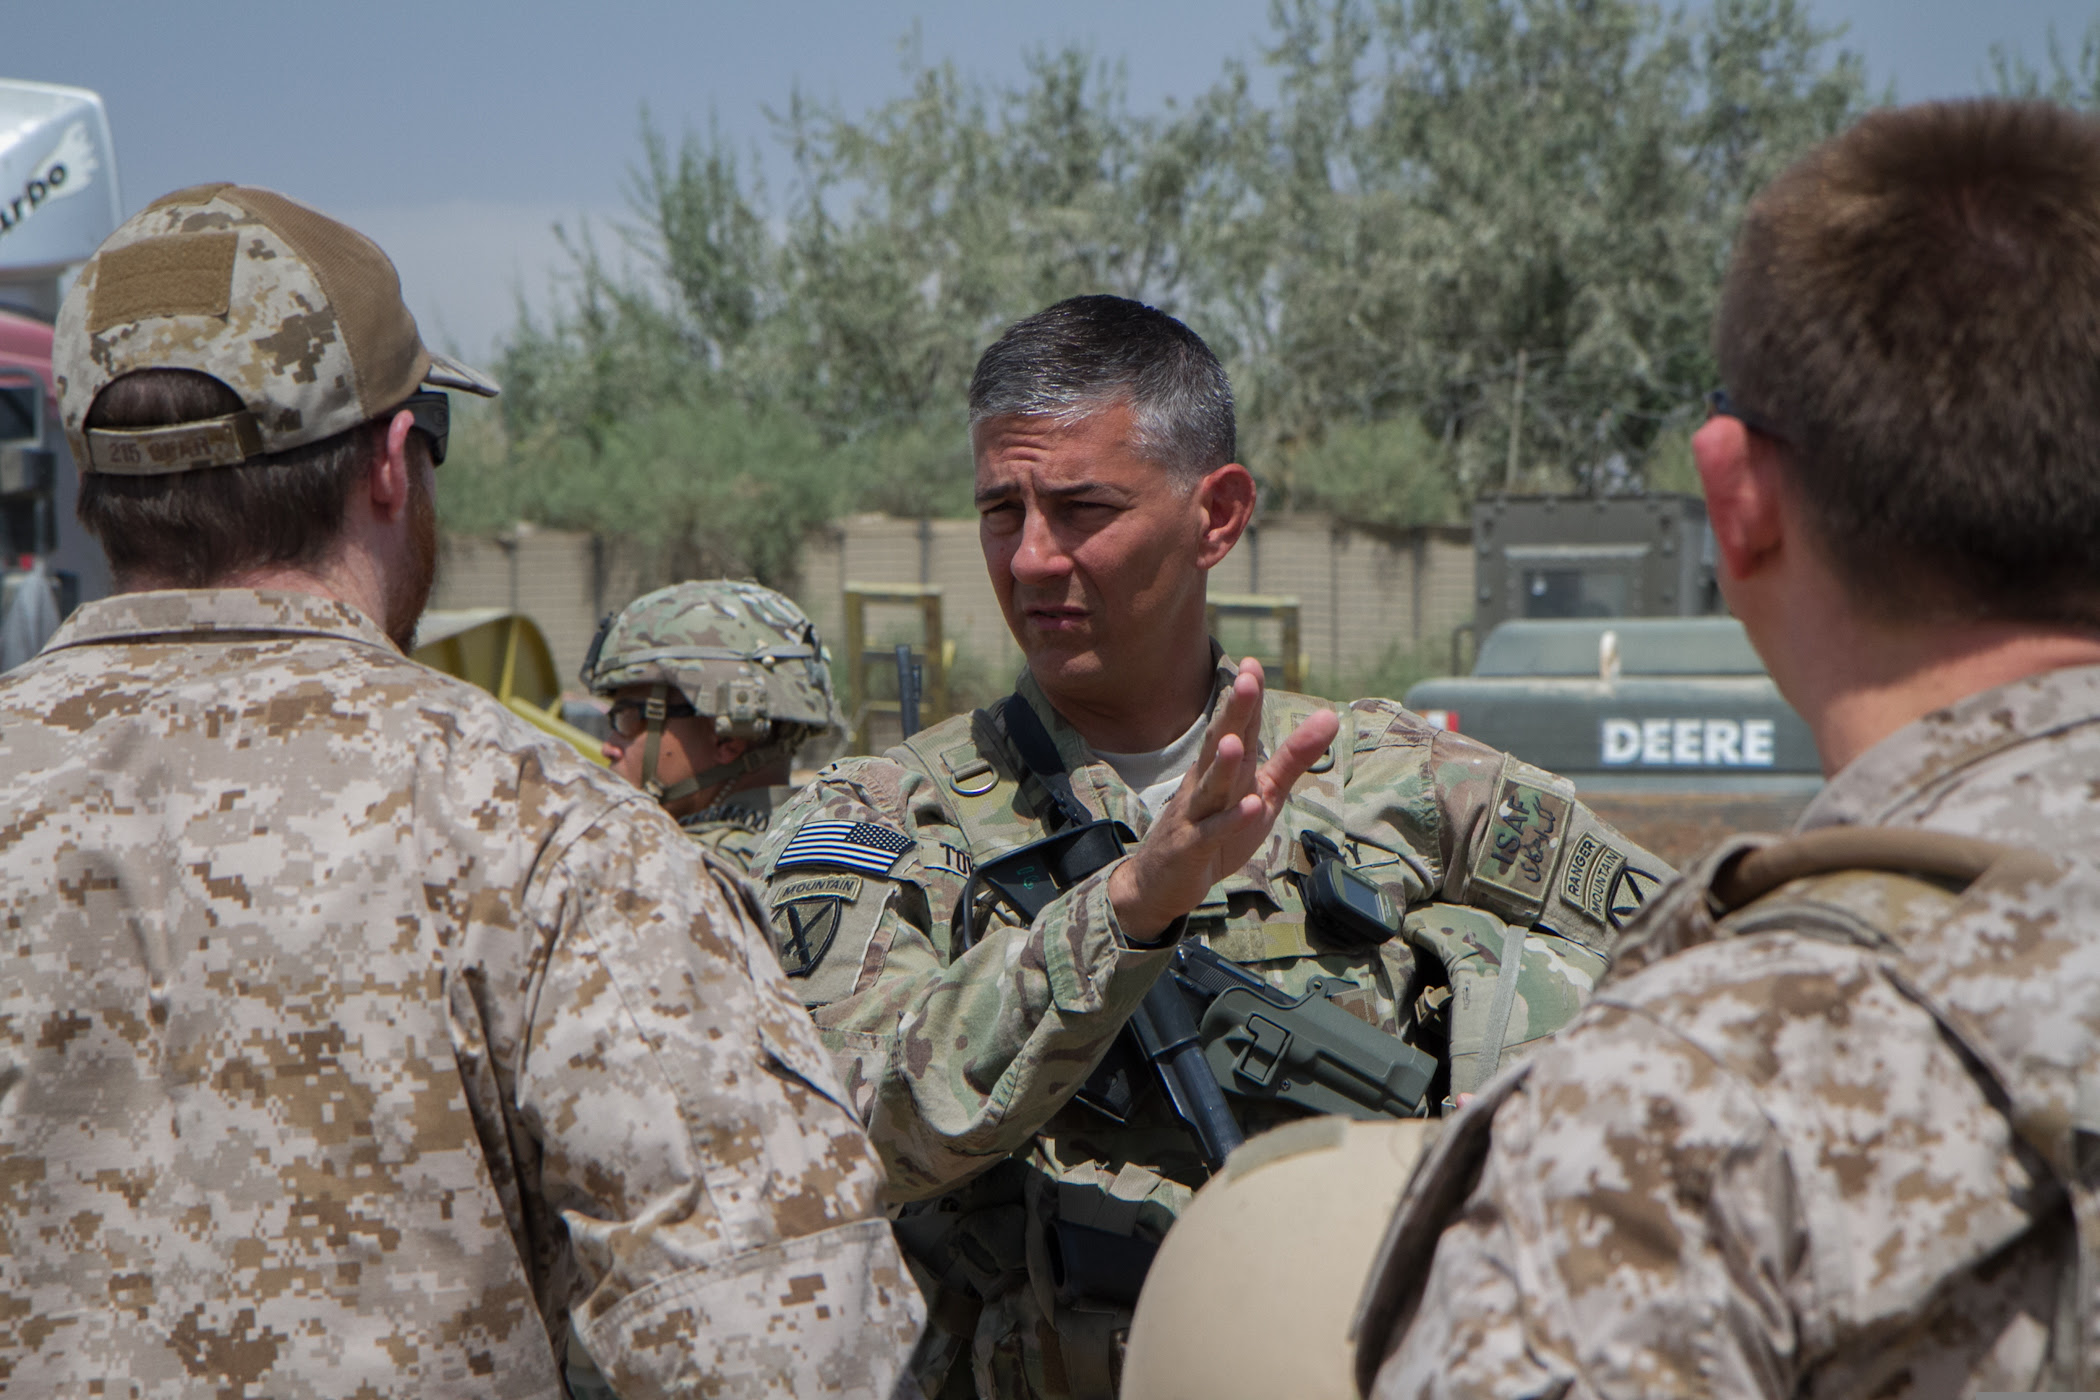 U.S. Army Maj. Gen. Stephen Townsend, the commander of Combined Joint Task Force 10 and Regional Command East, speaks with Service members during a visit to Baraki Barak, Logar province, Afghanistan, Aug. 25, 2014. (U.S. Army photo by Master Sgt. Kap Kim/Released)